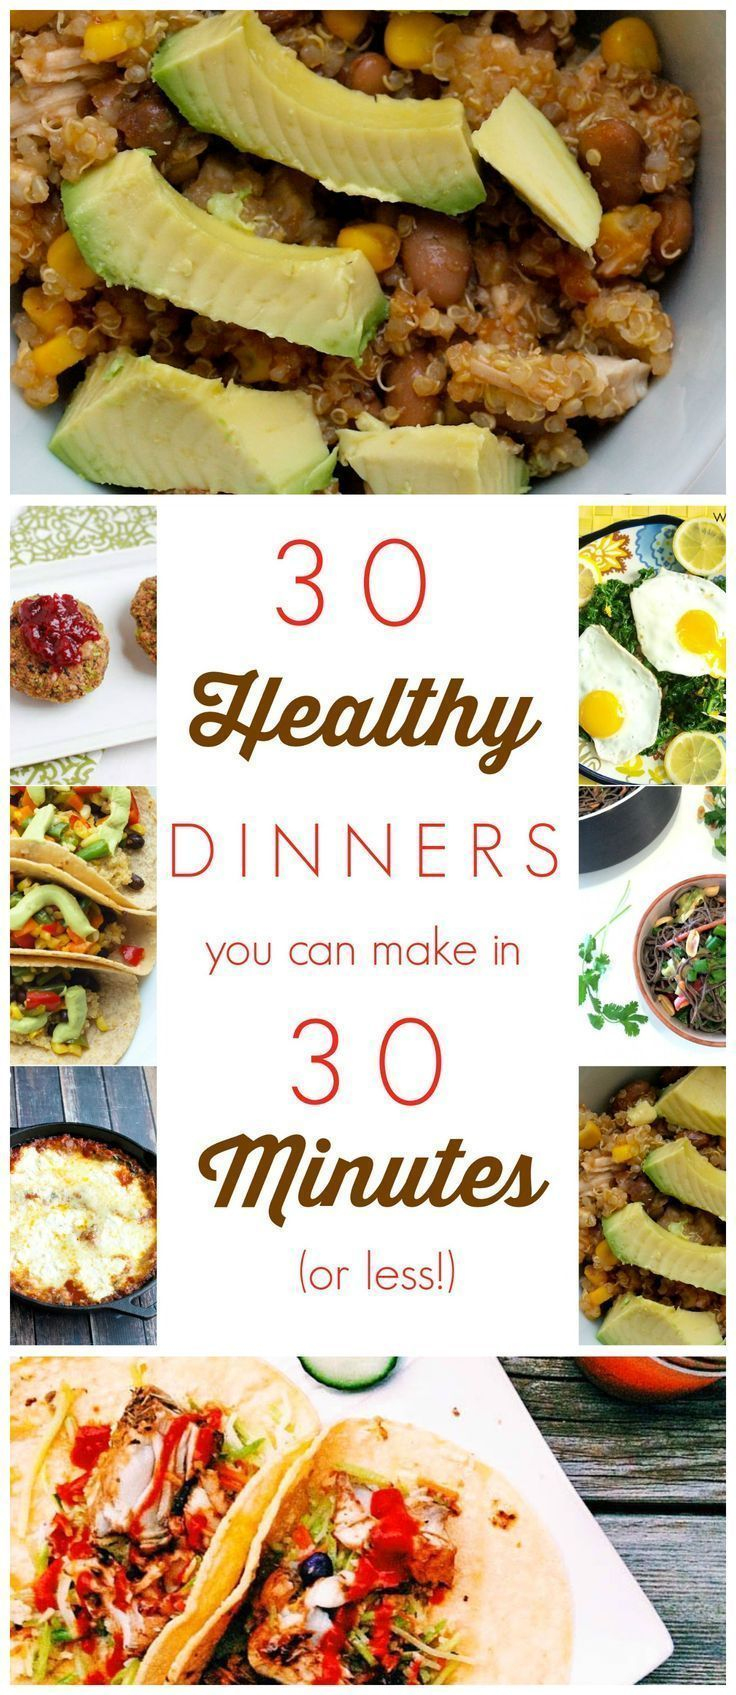 30 Healthy Dinners You Can Make in 30 Minutes (or less!) images